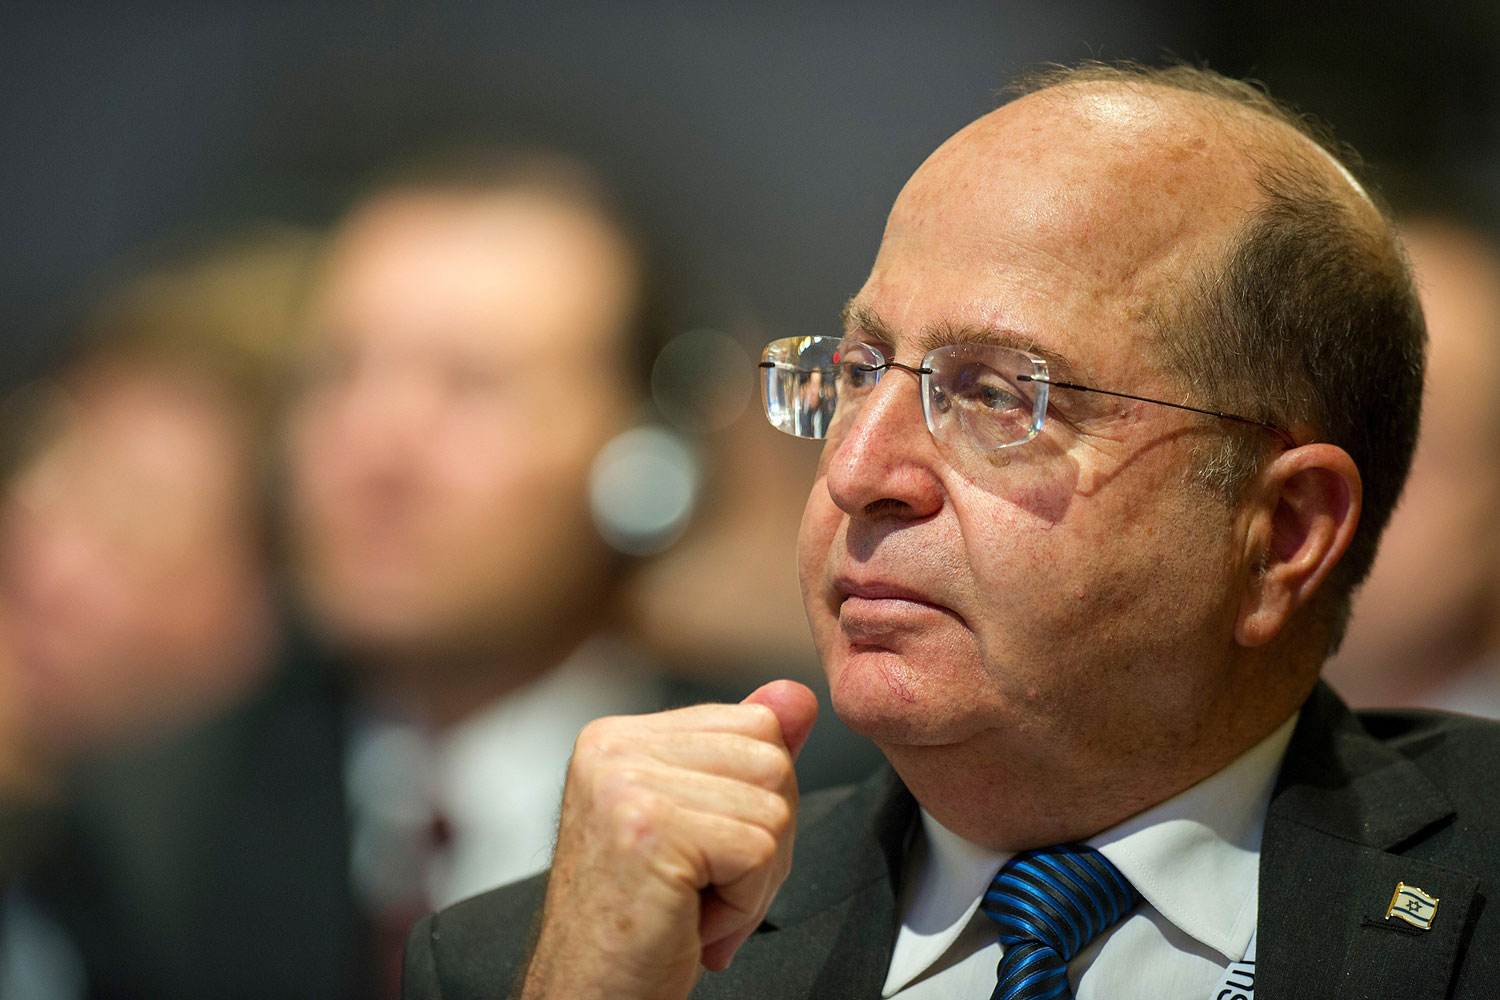 Israeli Defense Minister Moshe Ya'alon attends a meeting session of the Munich Security Conference in Munich,  Feb. 2, 2014.